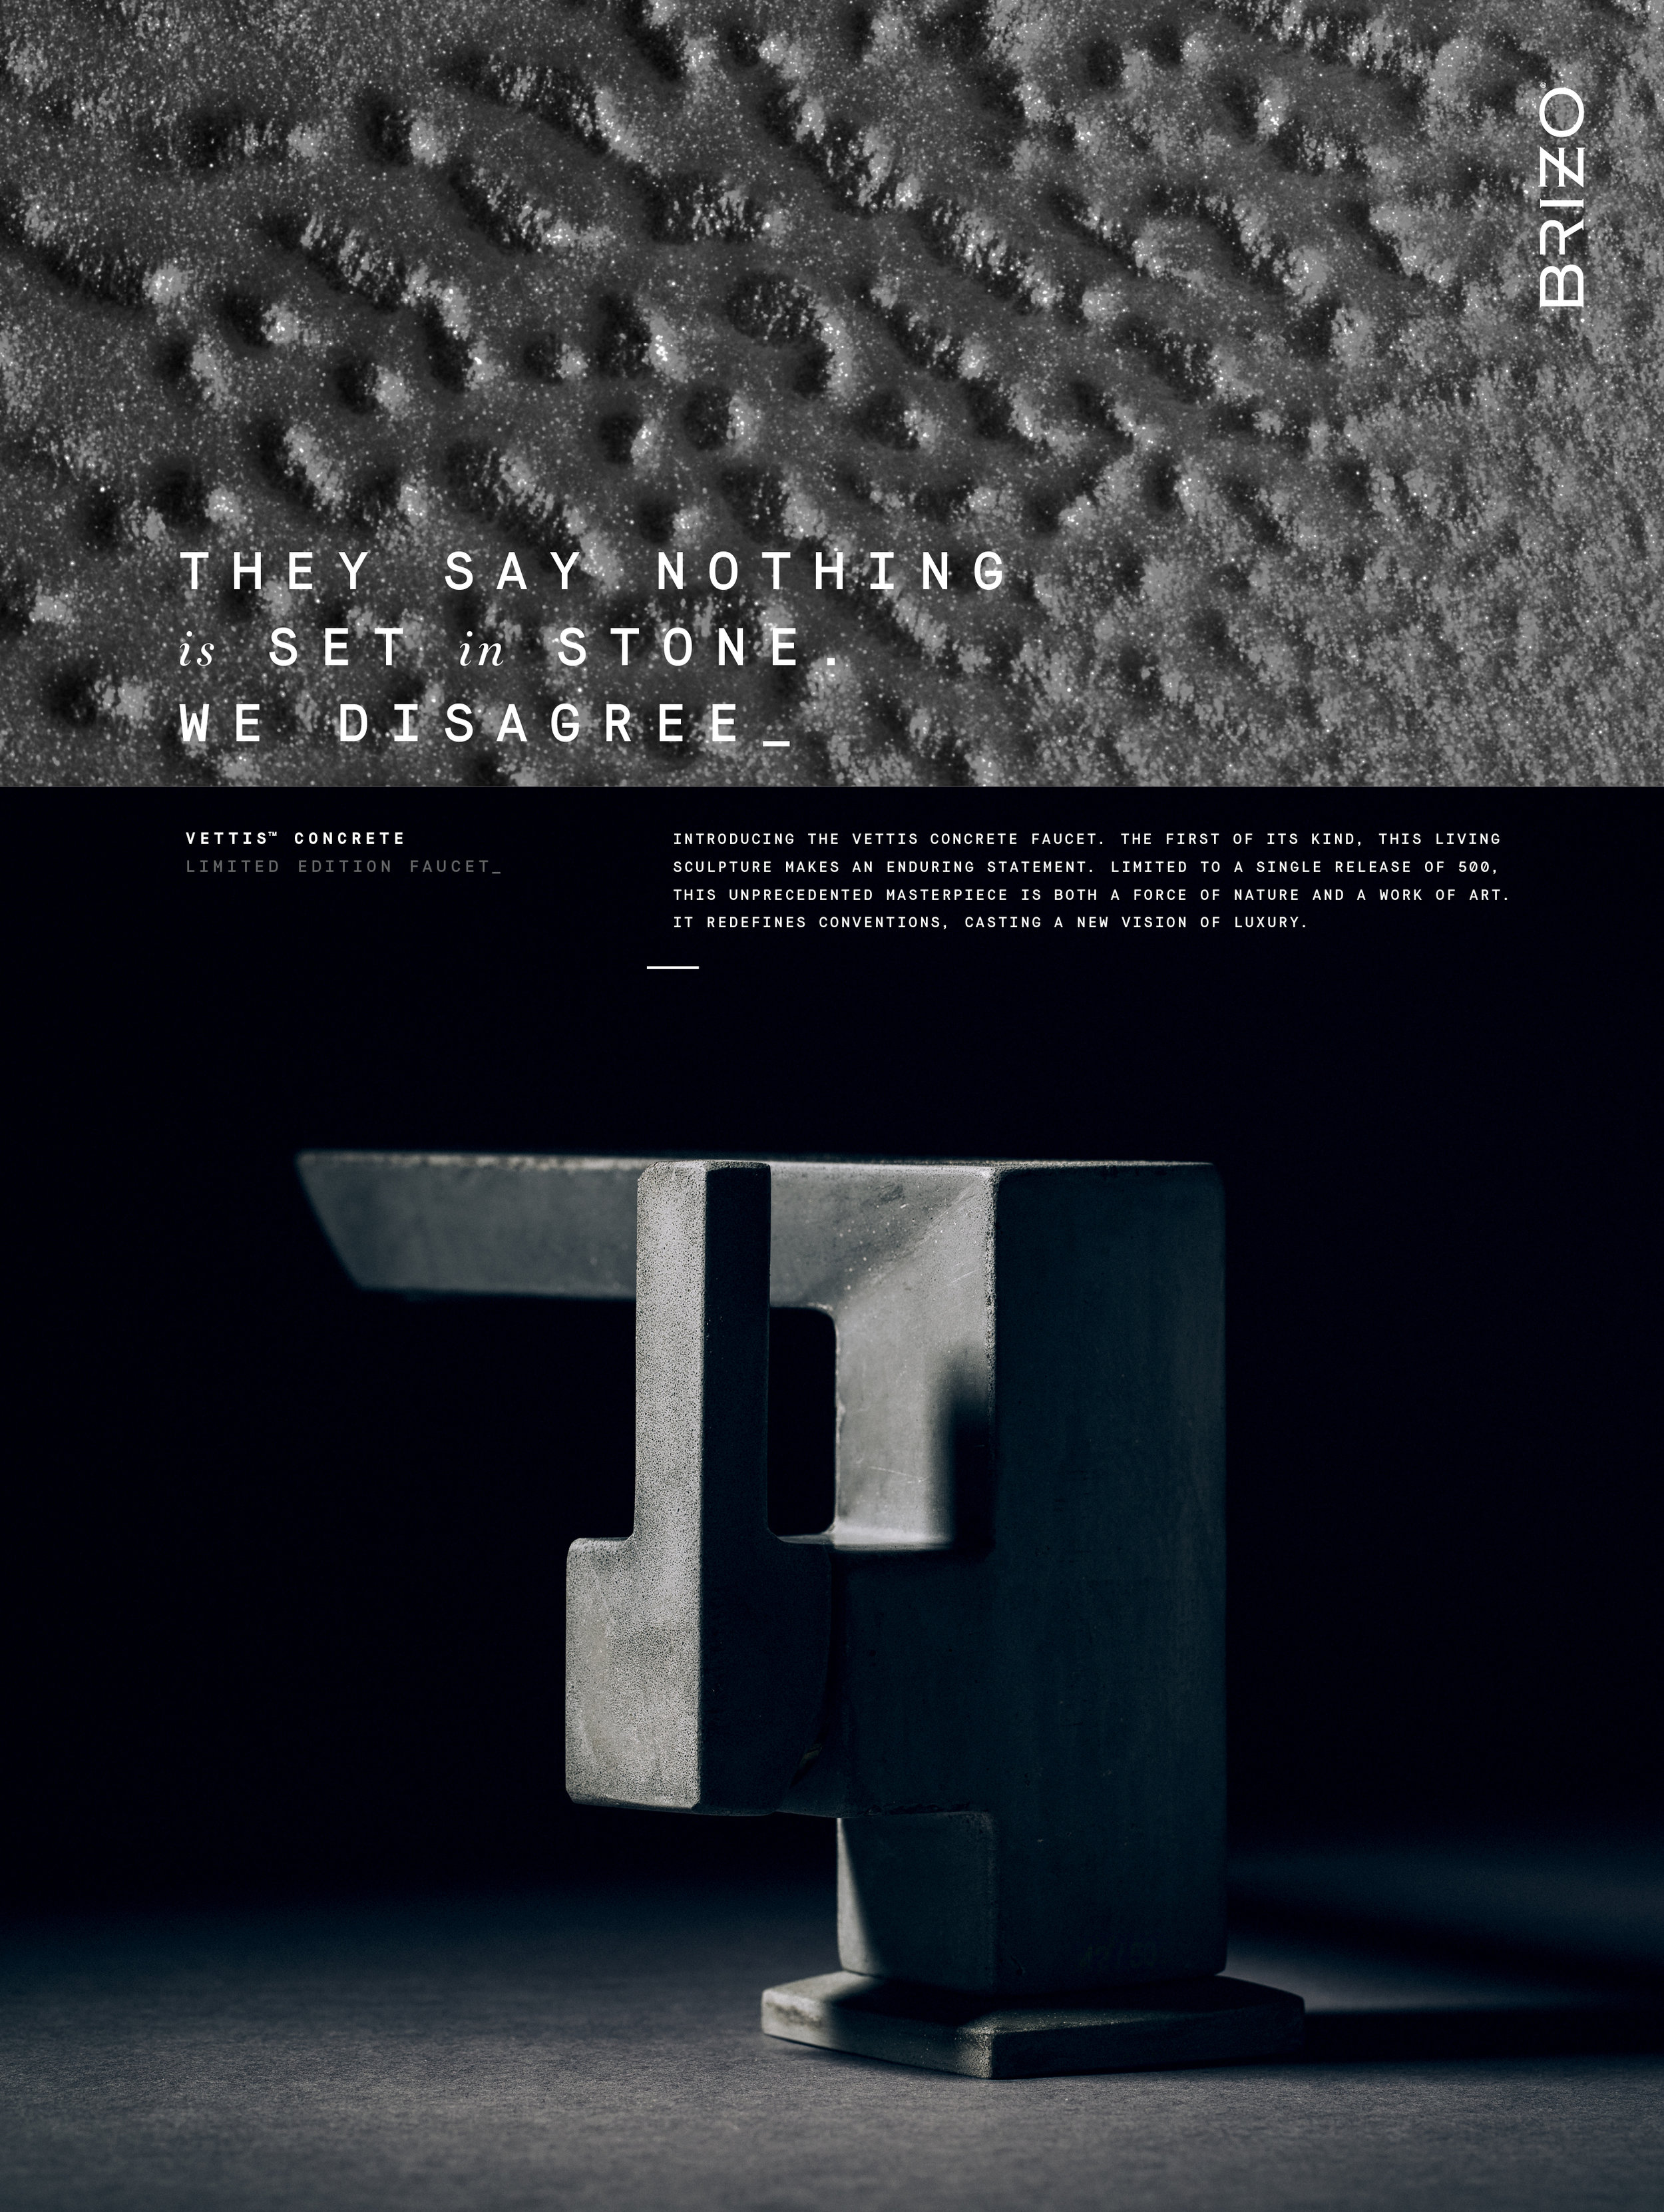 18-BR Concrete_Event_Posters_18x24_23.jpg